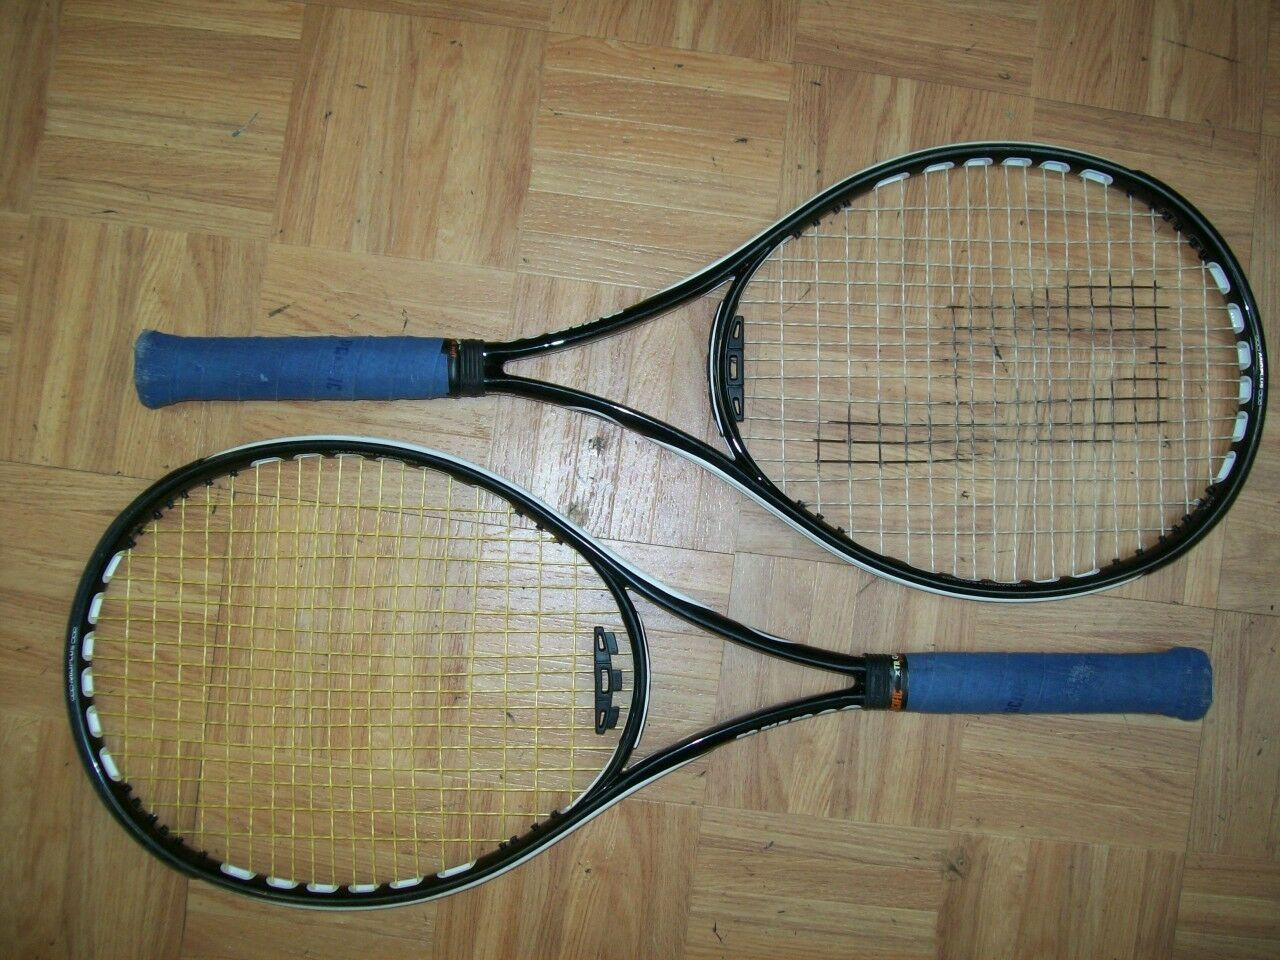 (1) Prince O3 SpeedPort bianca 100 head 4 3/8 grip Tennis Racquet